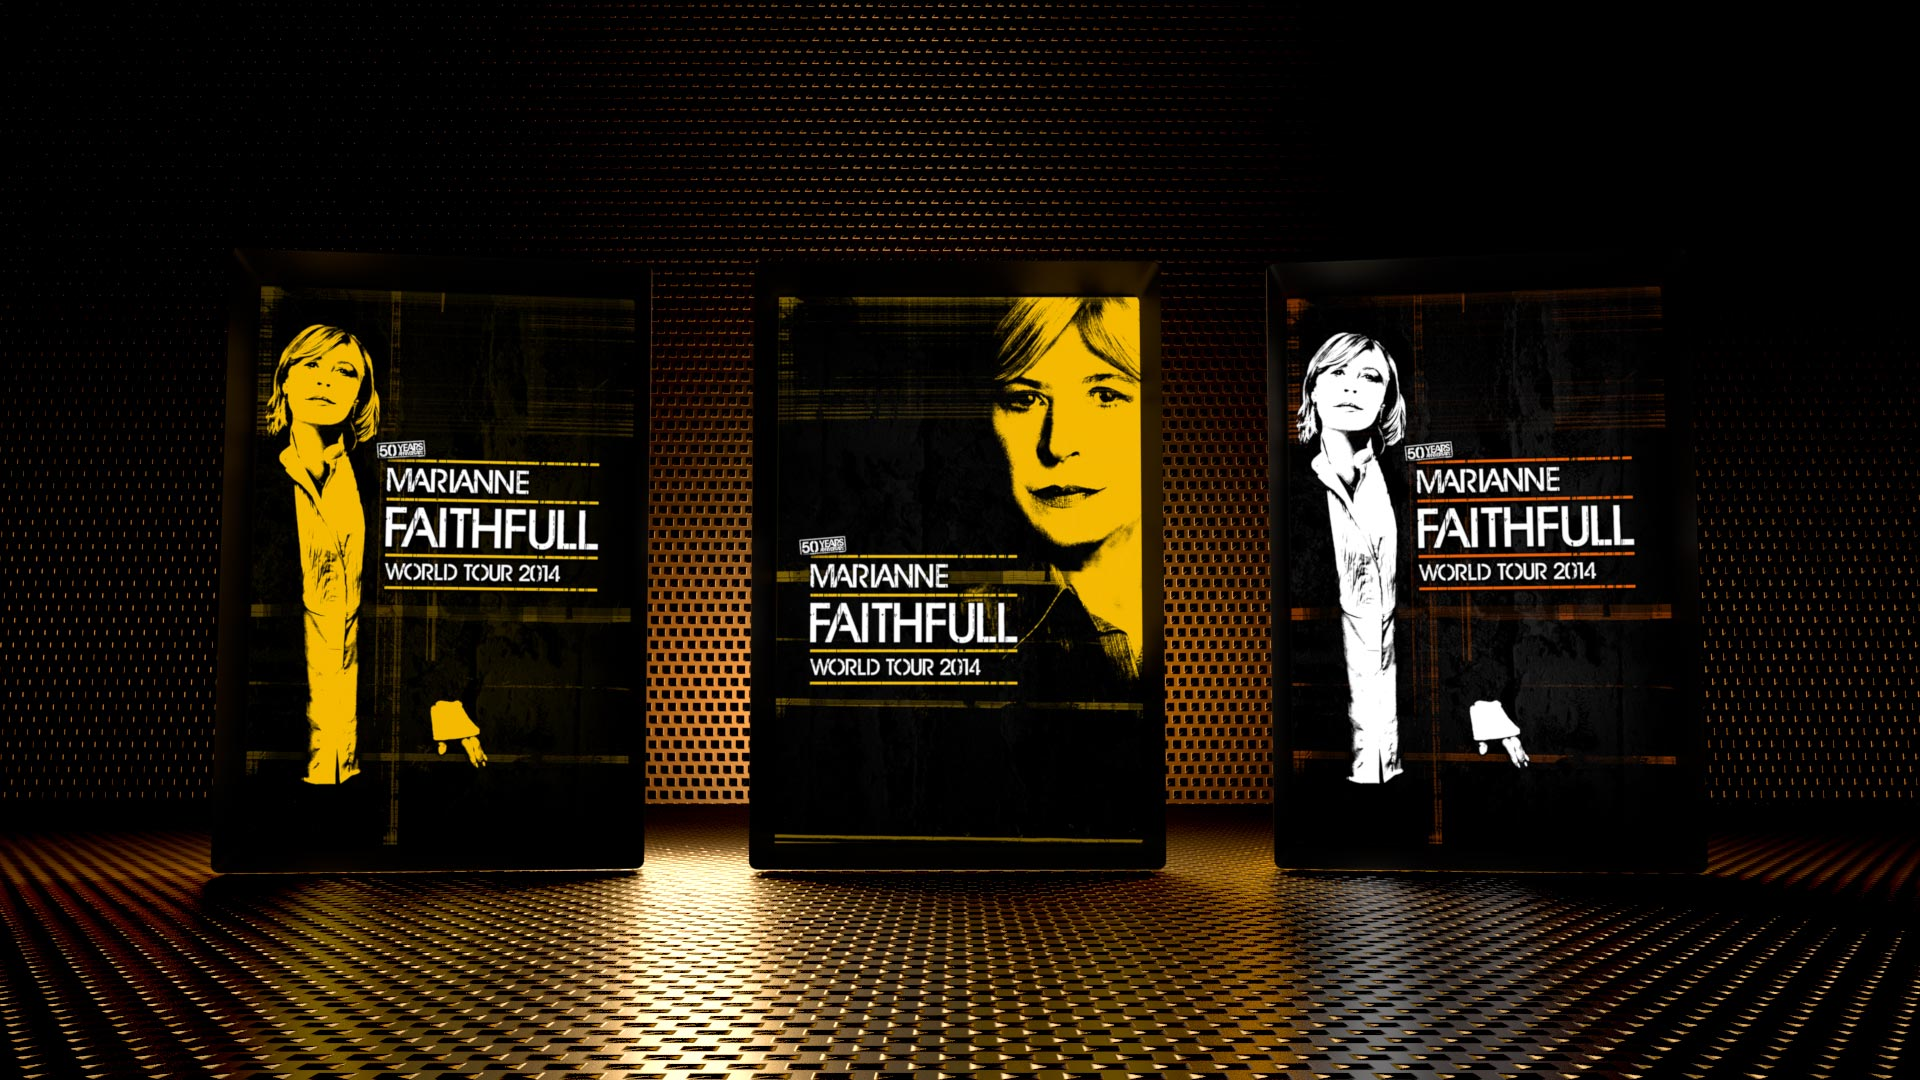 Design of Marianne Faithfull's World Tour 2014, 50 years anniversary.